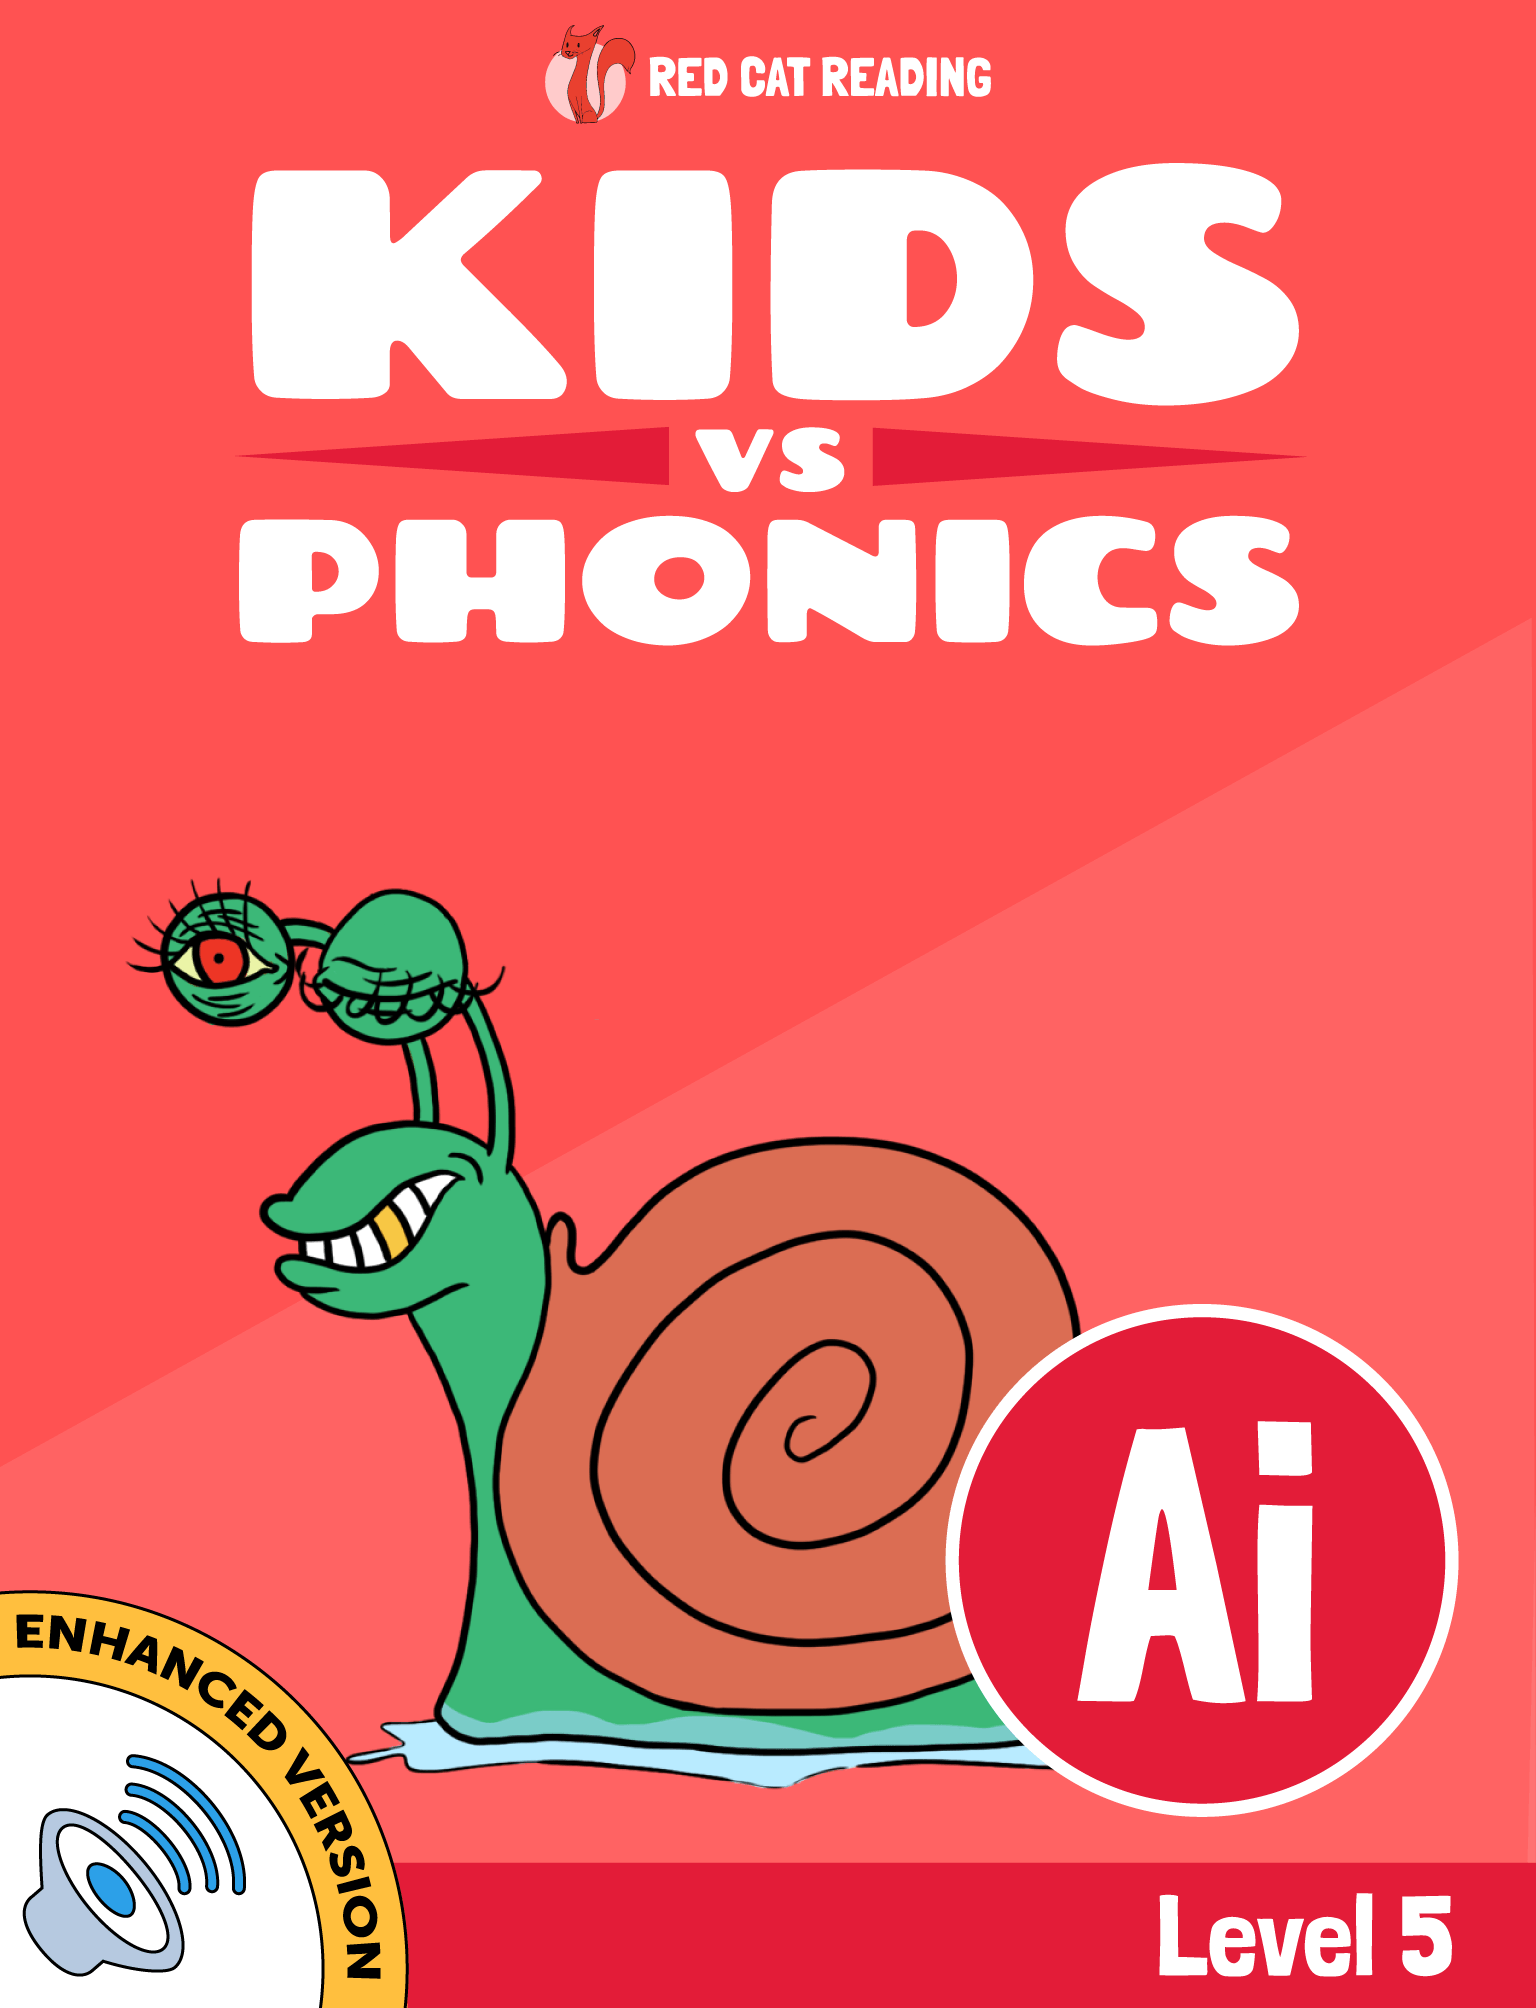 Red Cat Reading Kids vs Phonics Sound AI